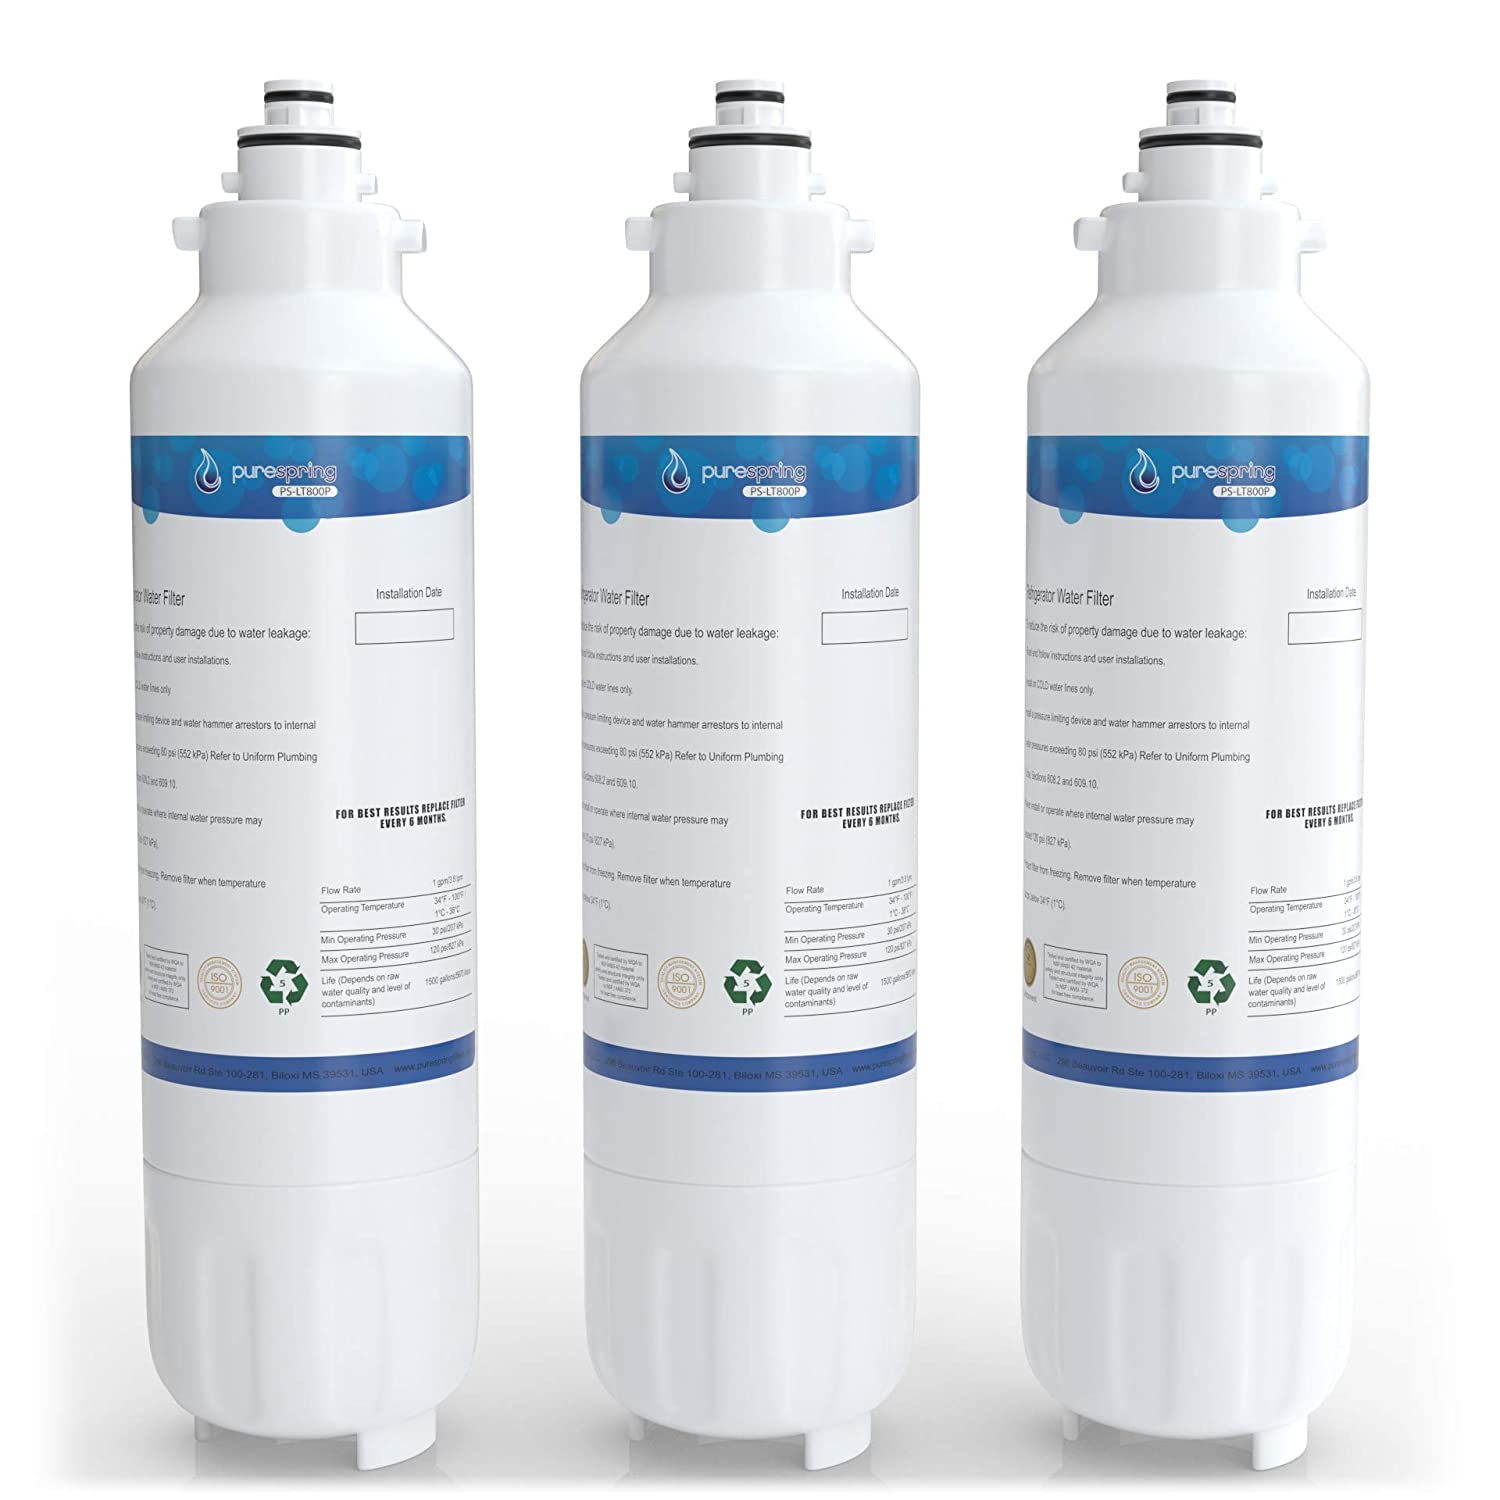 PureSpring PS-LT800P Replacement Refrigerator Water Filter, Compatible with LG LT800P, ADQ73613401, ADQ73613402, Kenmore 9490, 46-9490, 469490 (3 Pack)